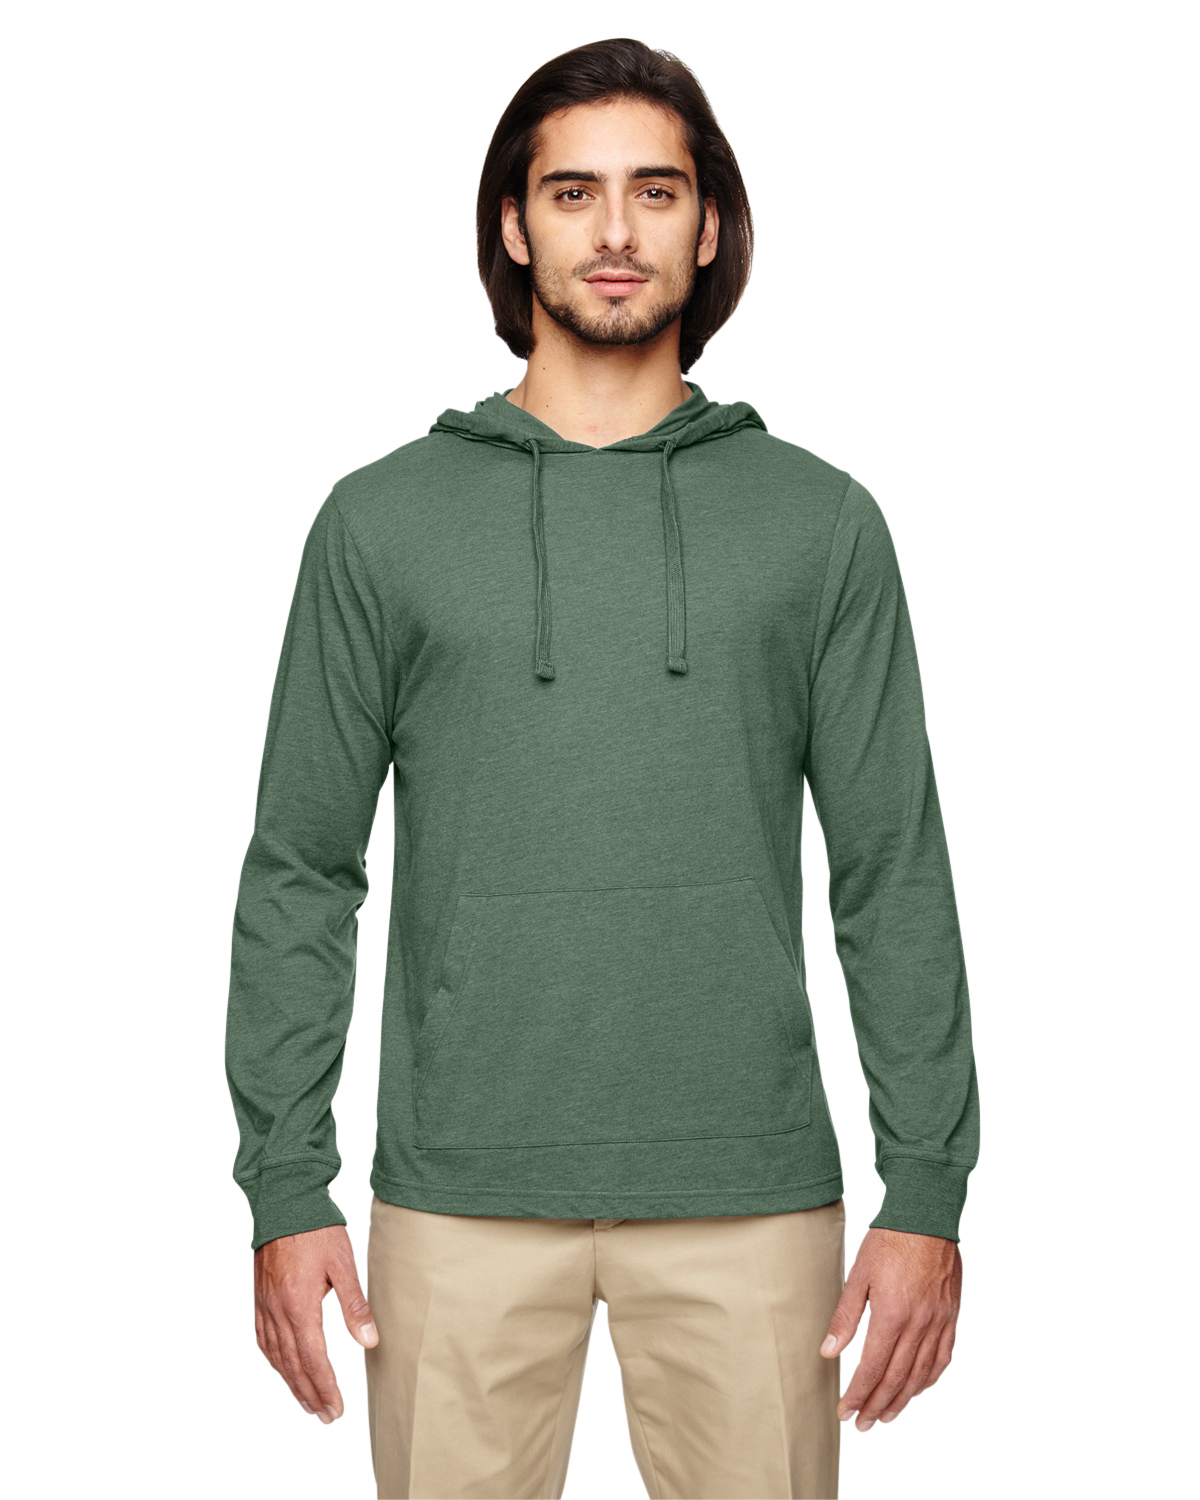 Econscious EC1085 - Unisex 4.25 oz. Blended Eco Jersey Pullover Hoodie